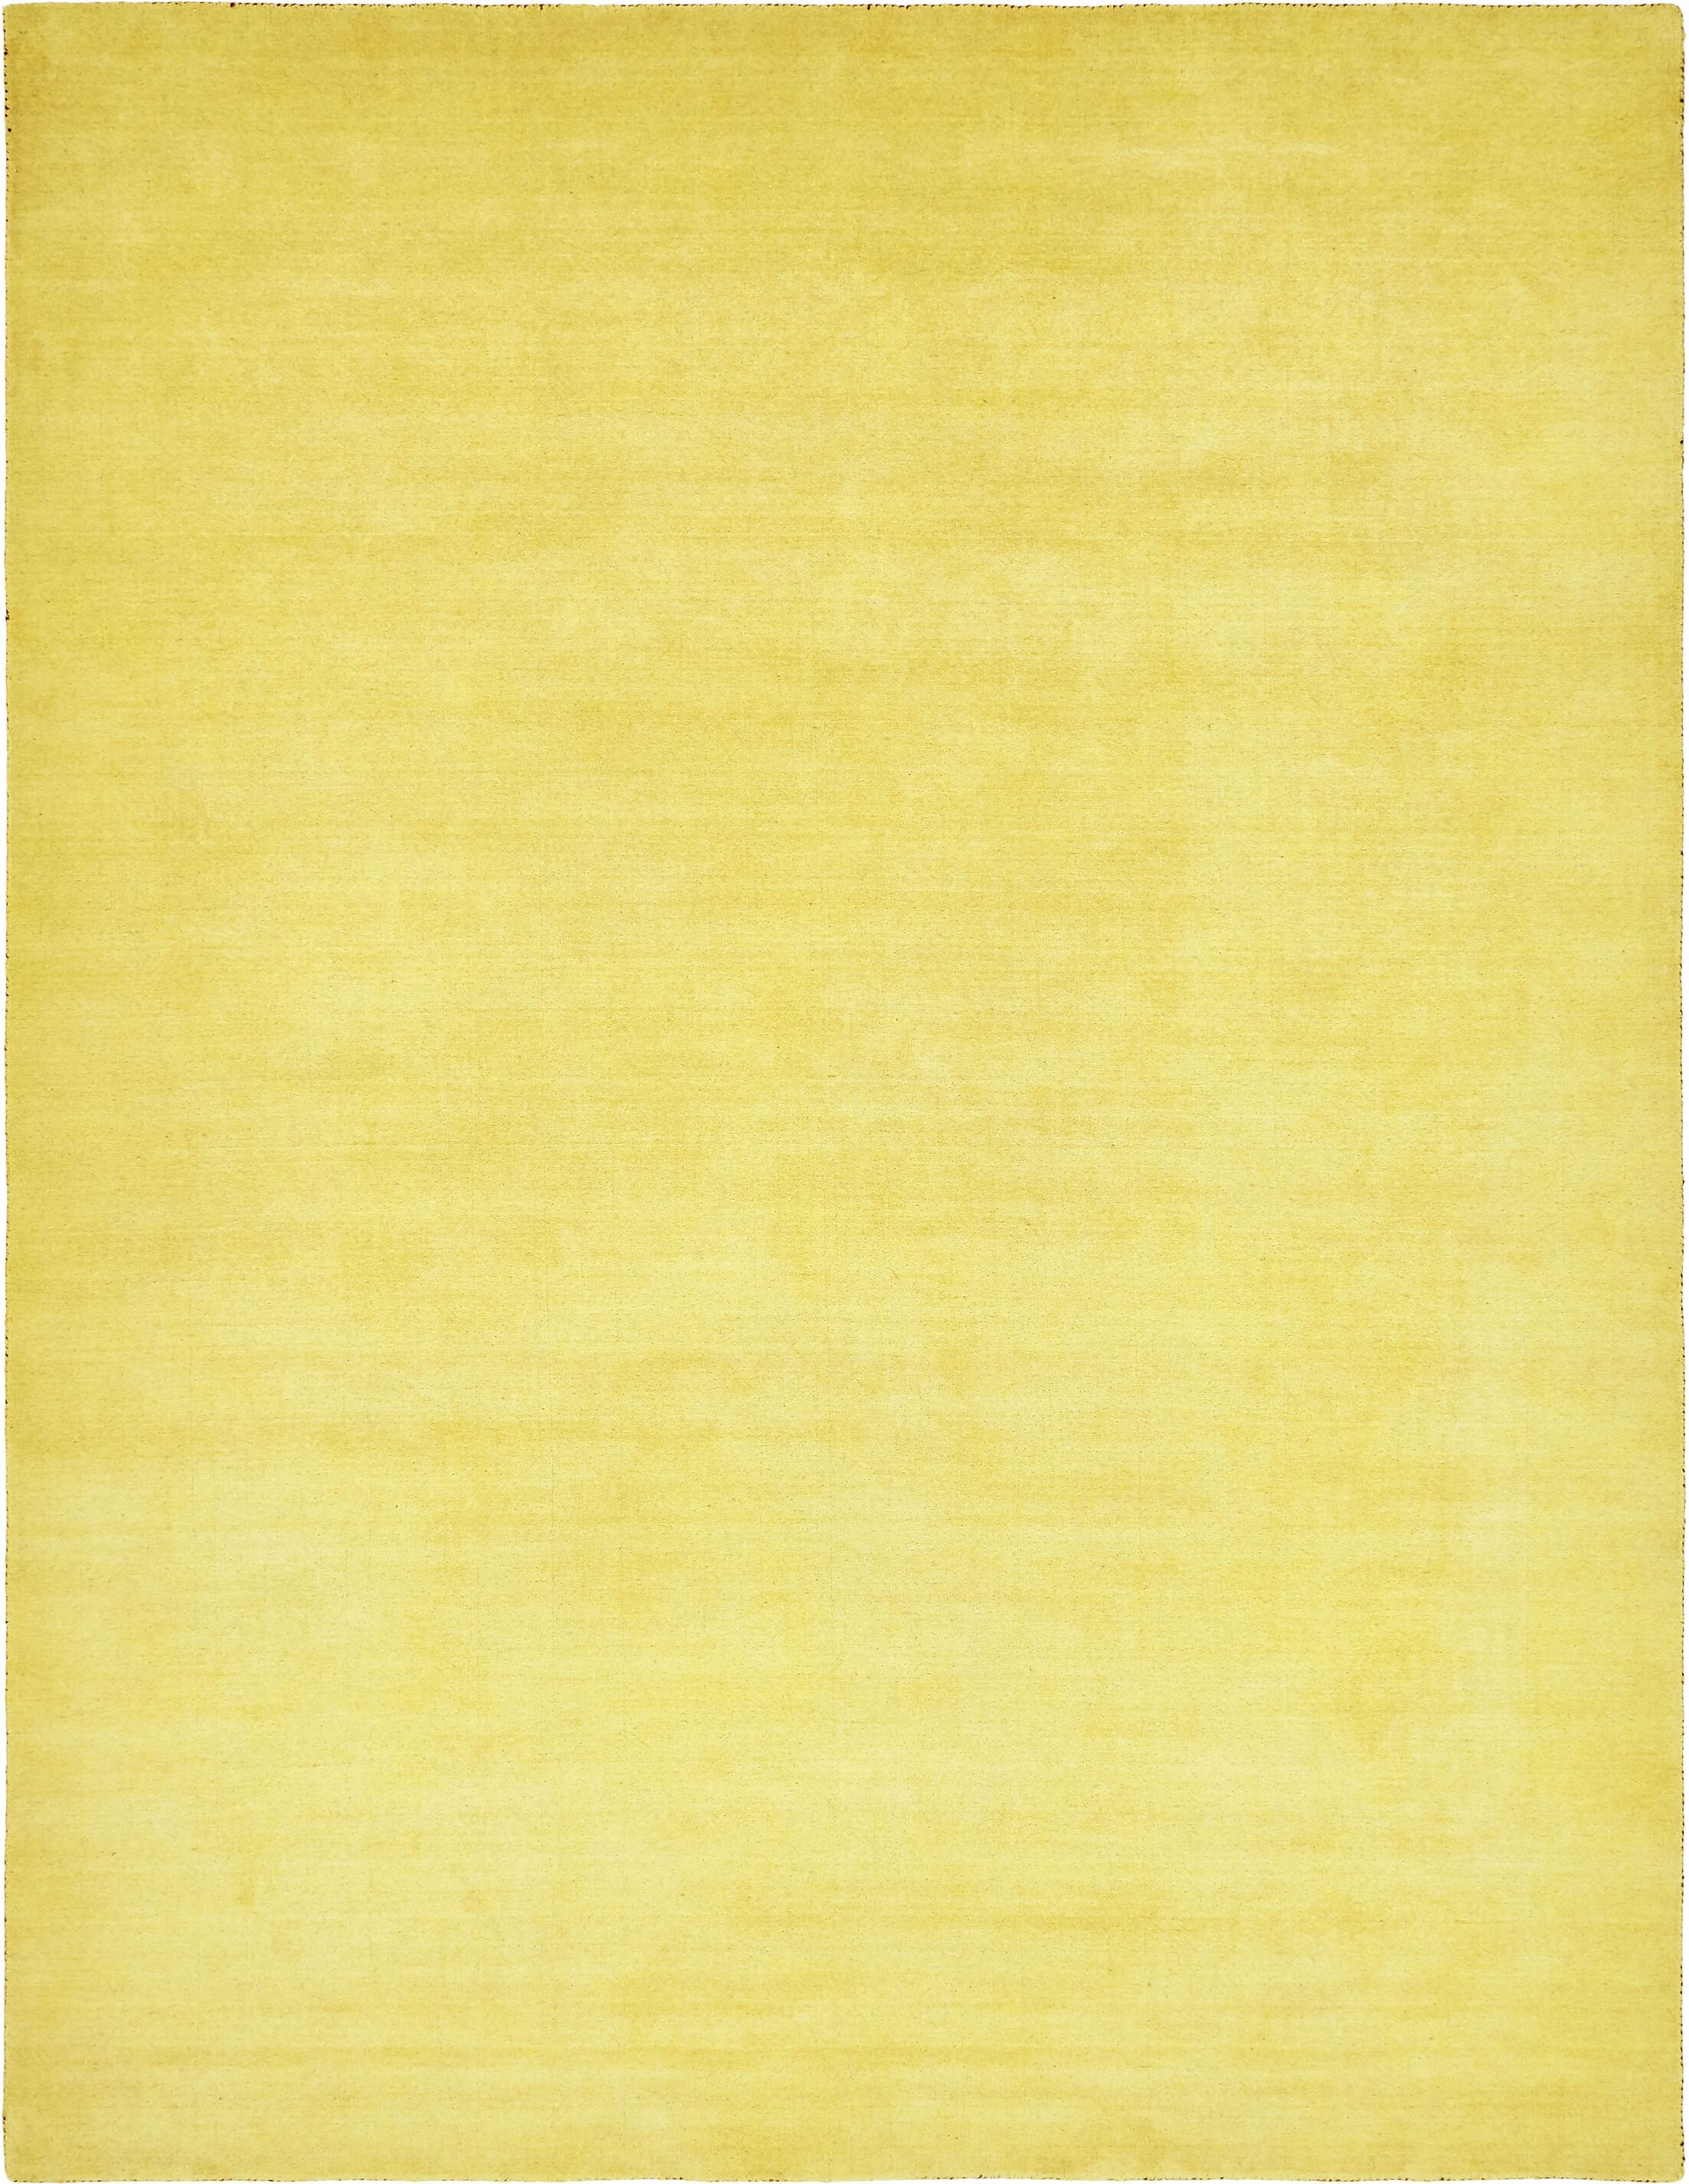 Taul Hand-Knotted Wool Yellow Area Rug Rug Size: 9' 10 x 13' 1